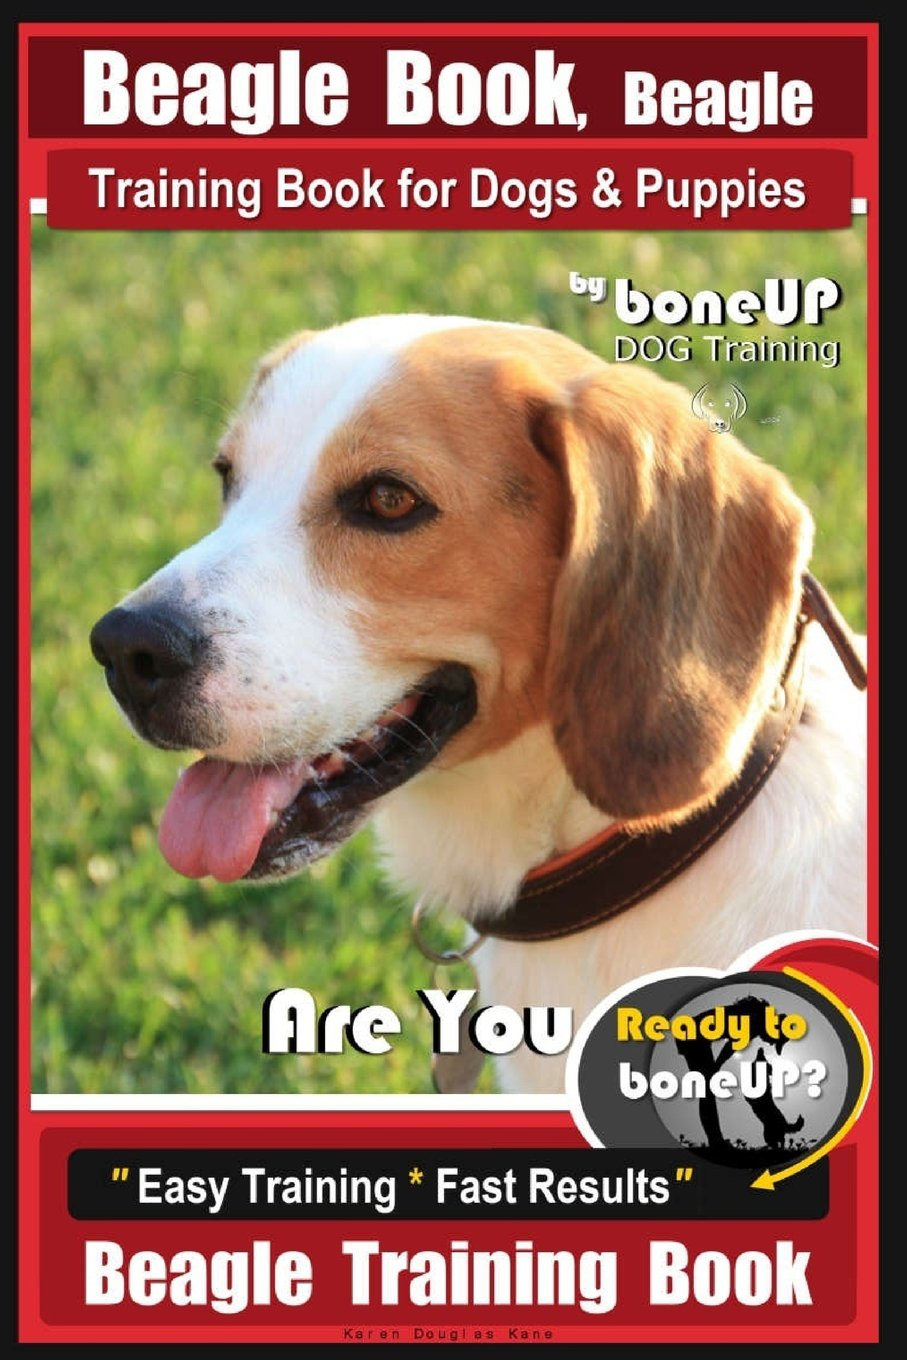 Beagle Book, Beagle Training Book for Dogs & Puppies By BoneUP DOG Training: Are You Ready to Bone up? Easy Training…